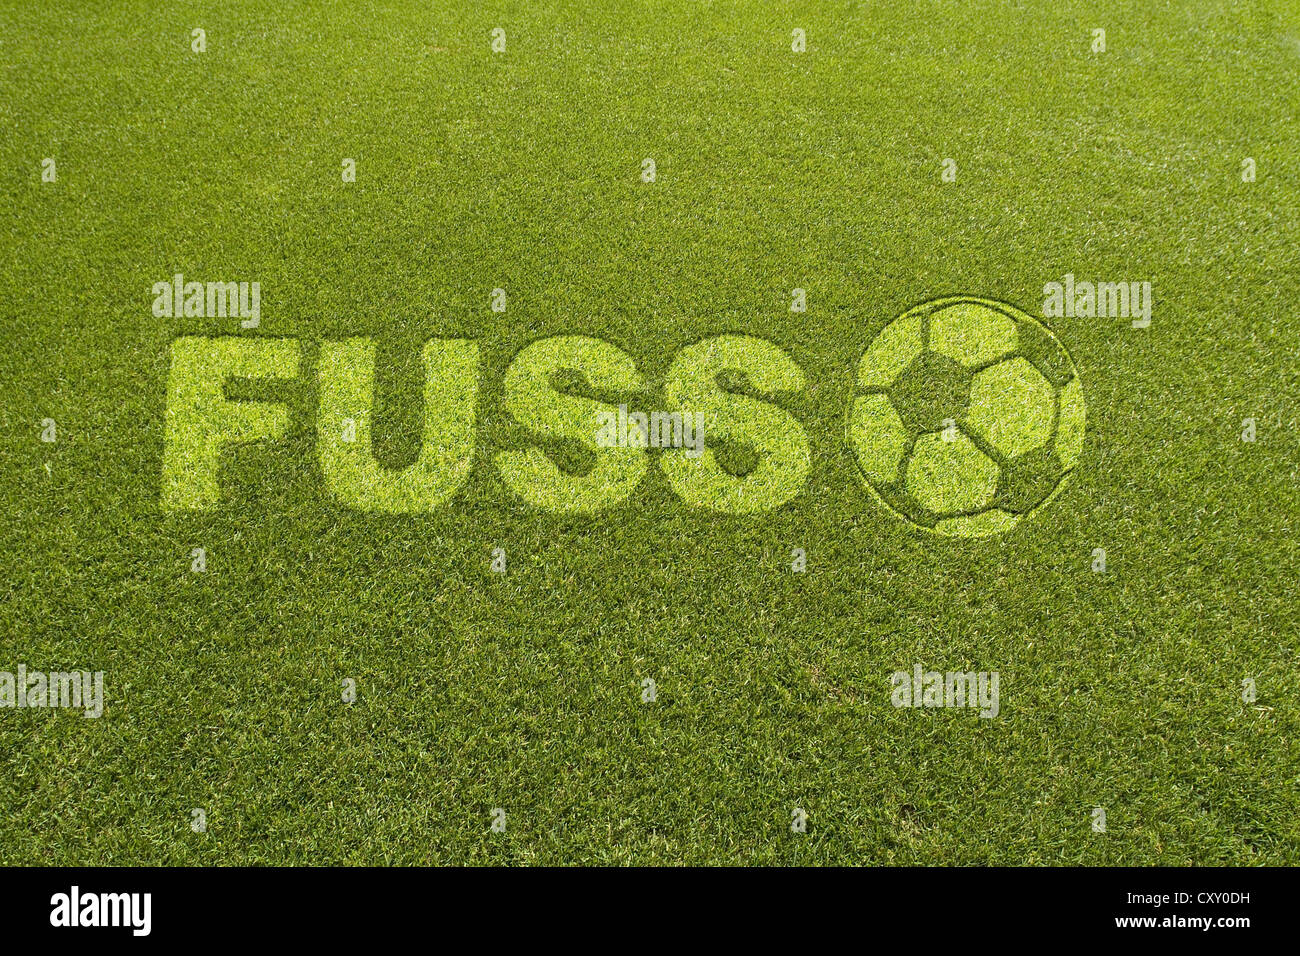 Grass with the lettering FUSS, German for foot, beside a football pattern, composing - Stock Image